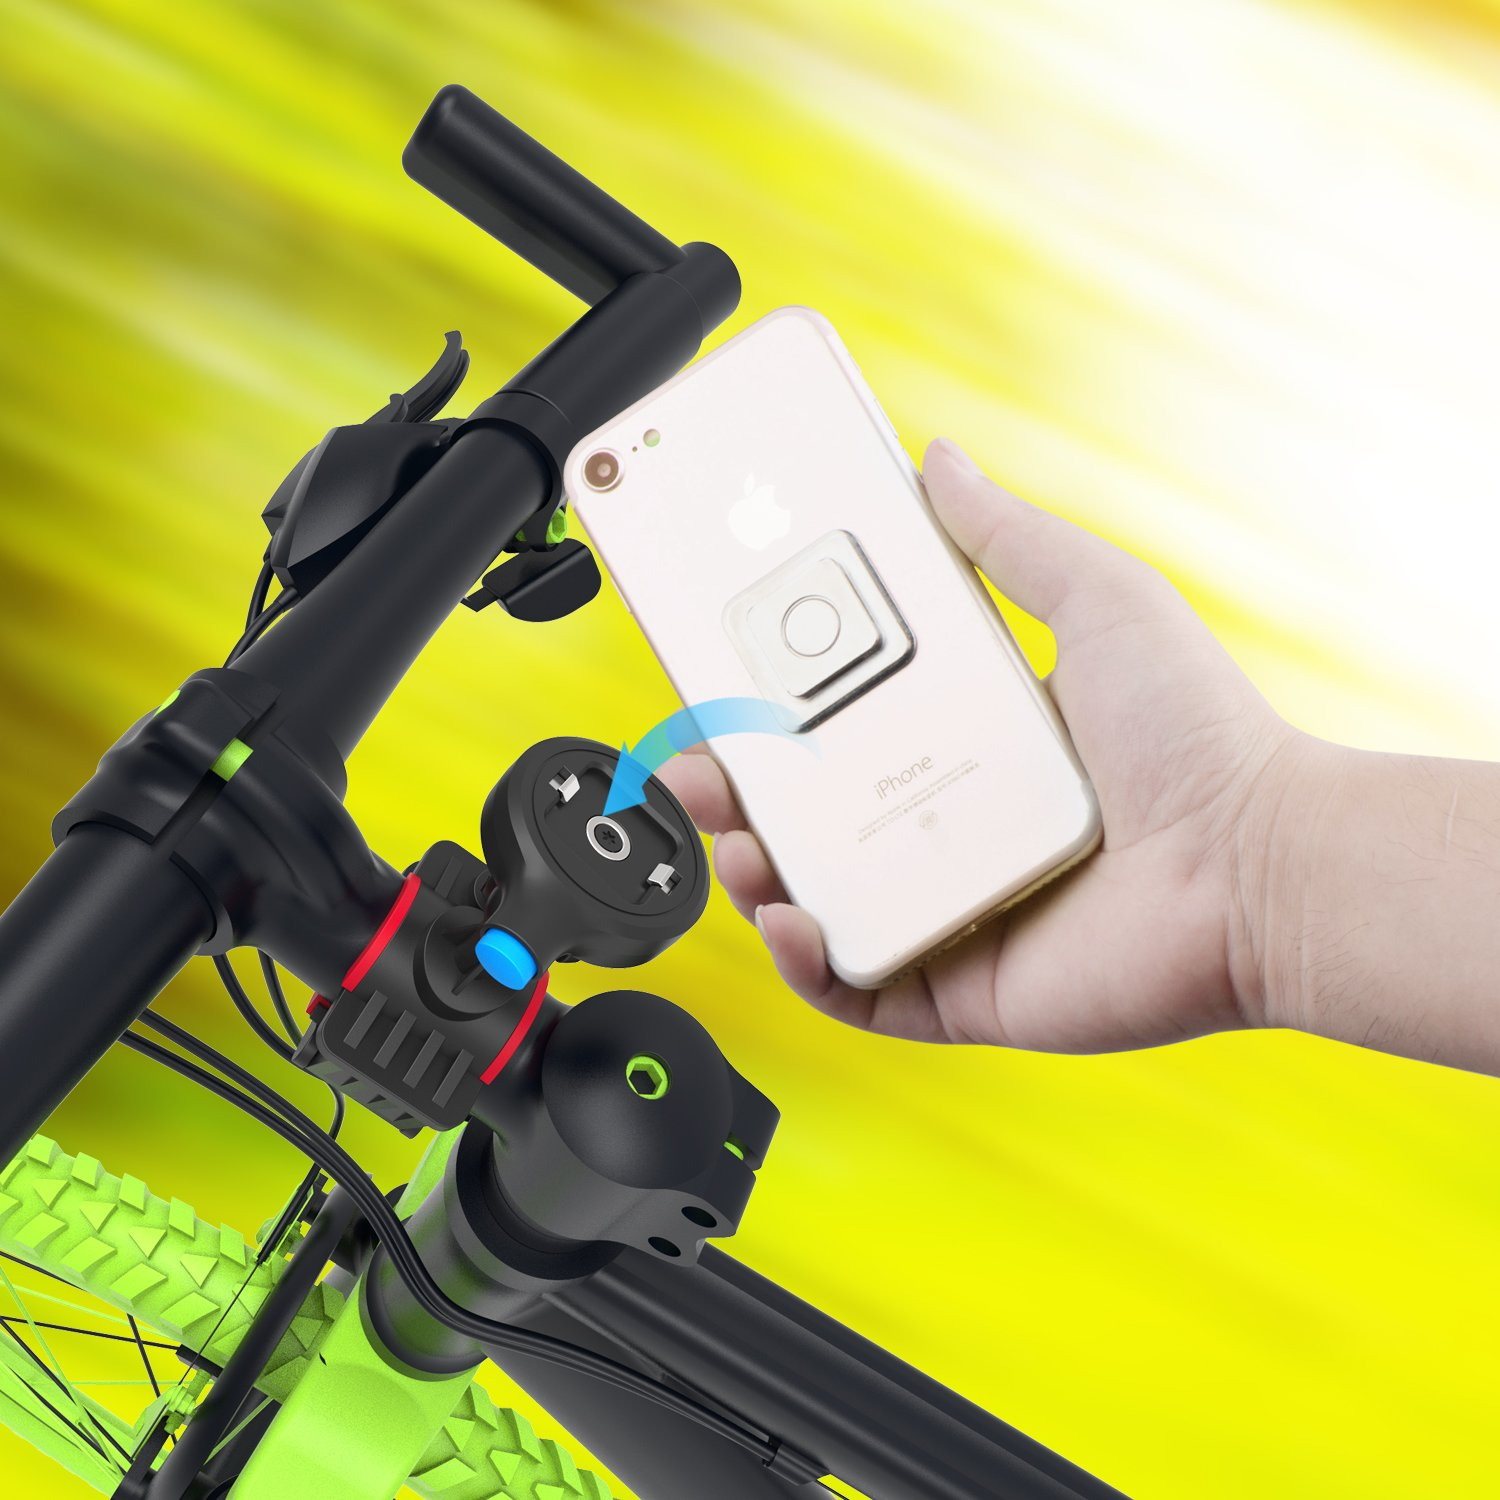 iPhone 8 Plus Bike and Pushchair Mount with One Touch Lock /& Release Feature 7 Clipster Bike Phone Mount for iPhone and Smartphones Samsung Ga CLIP-BIKE 6S Universal Mount Compatible with iPhone X 6 Plus